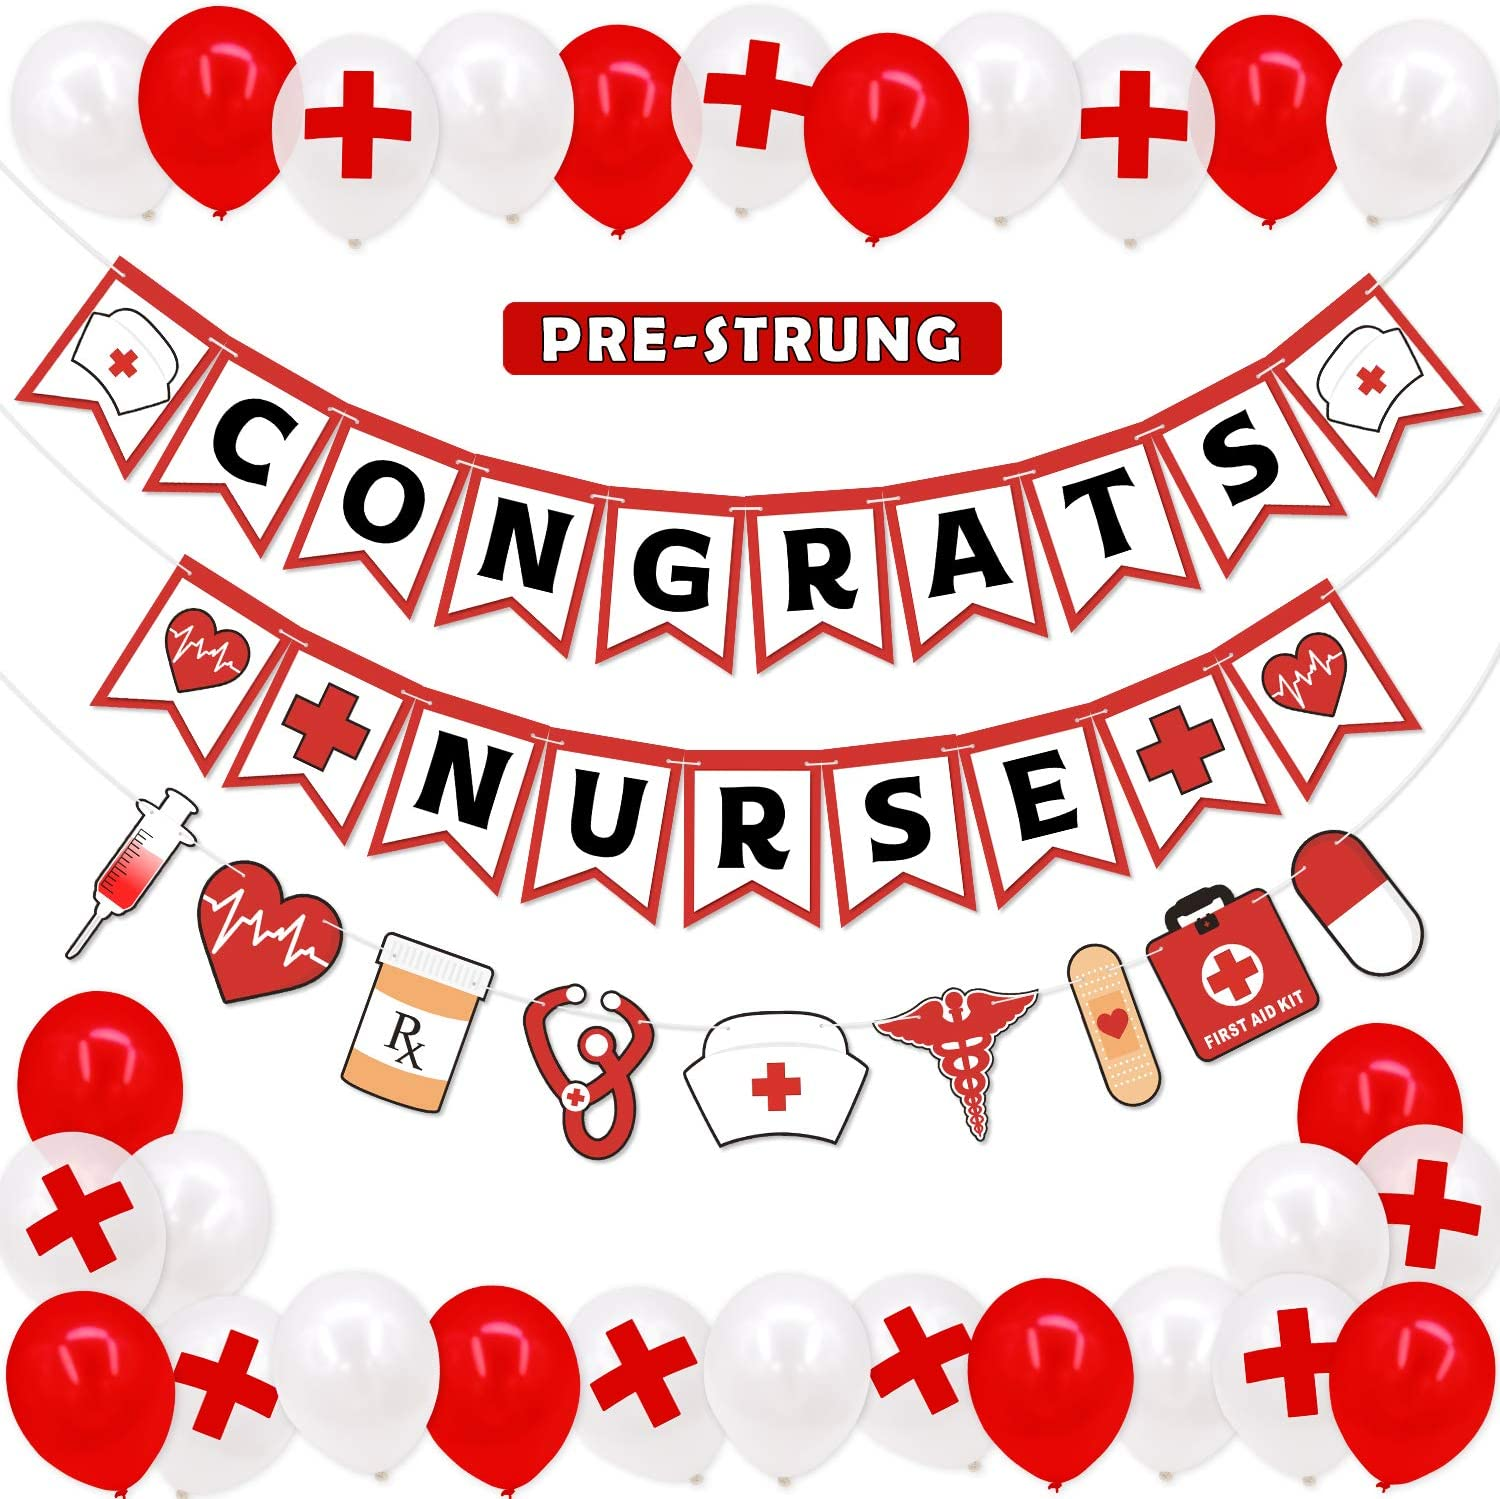 Amazon Com Levfla Nursing School Graduation Party Decoration Favor Set Congrats Nurse Banner Medical Theme Rn Bsn Garland Red Cross Balloons Nurse Week Appreciation Gift Ideas 2020 Supplies Toys Games